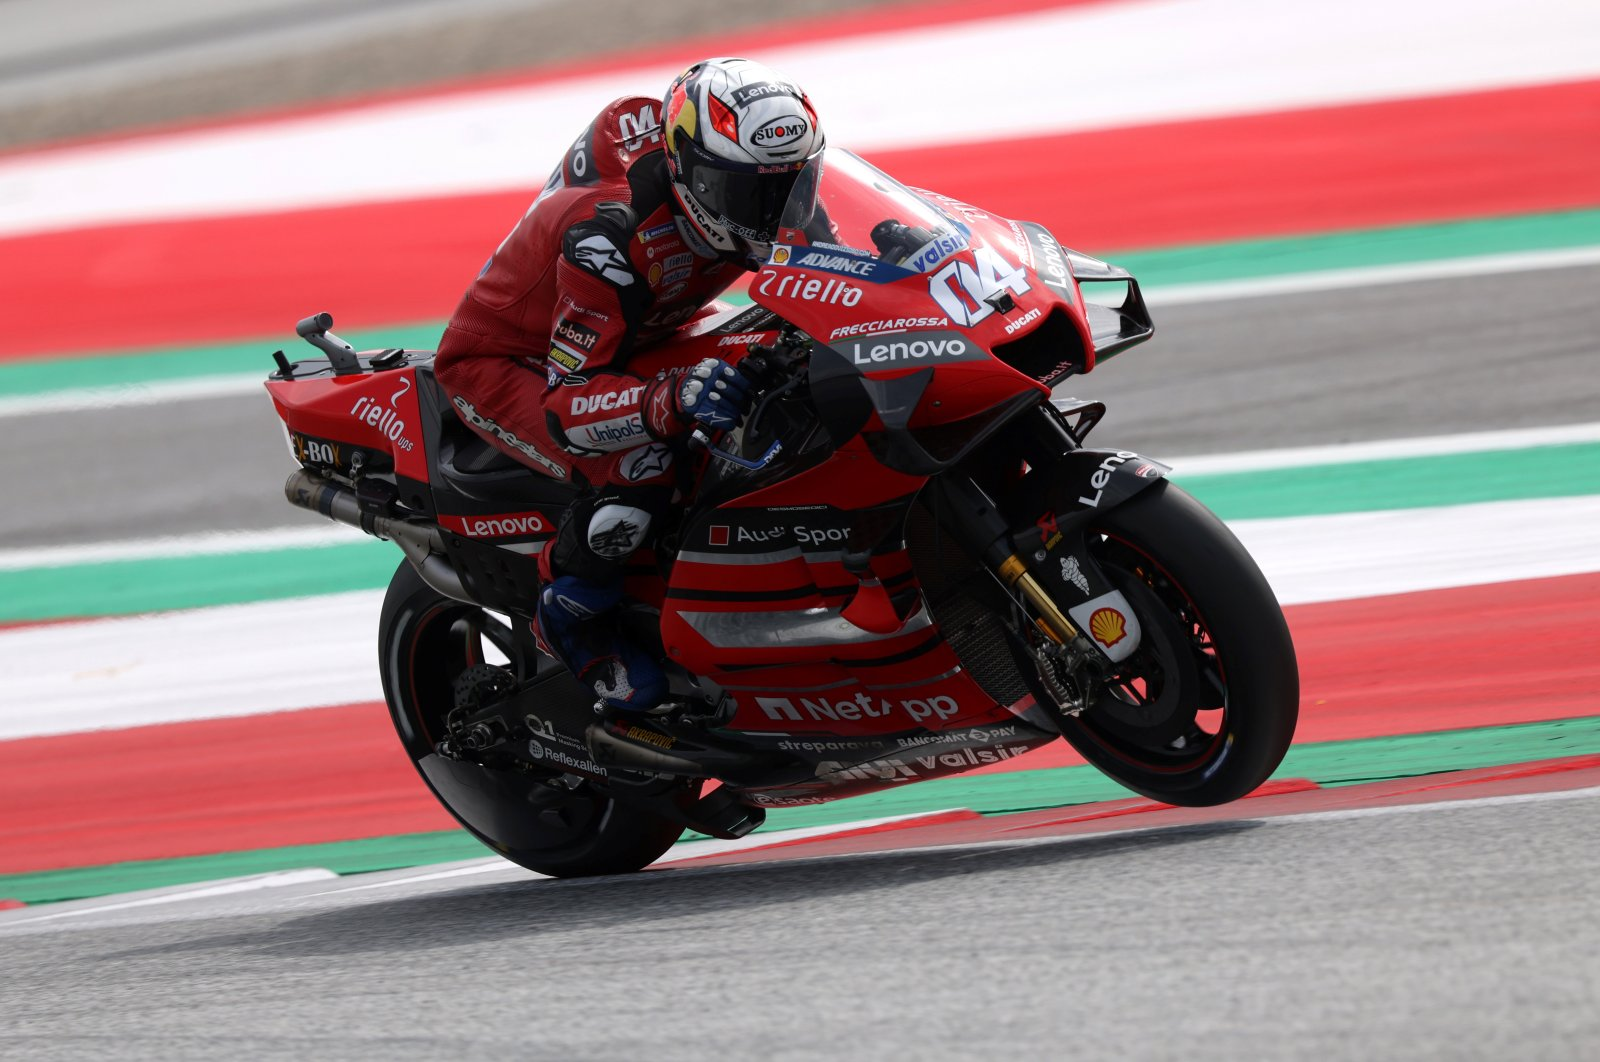 Andrea Dovizioso rides during qualifying, in Spielberg, Austria, Aug. 15, 2020. (REUTERS Photo)